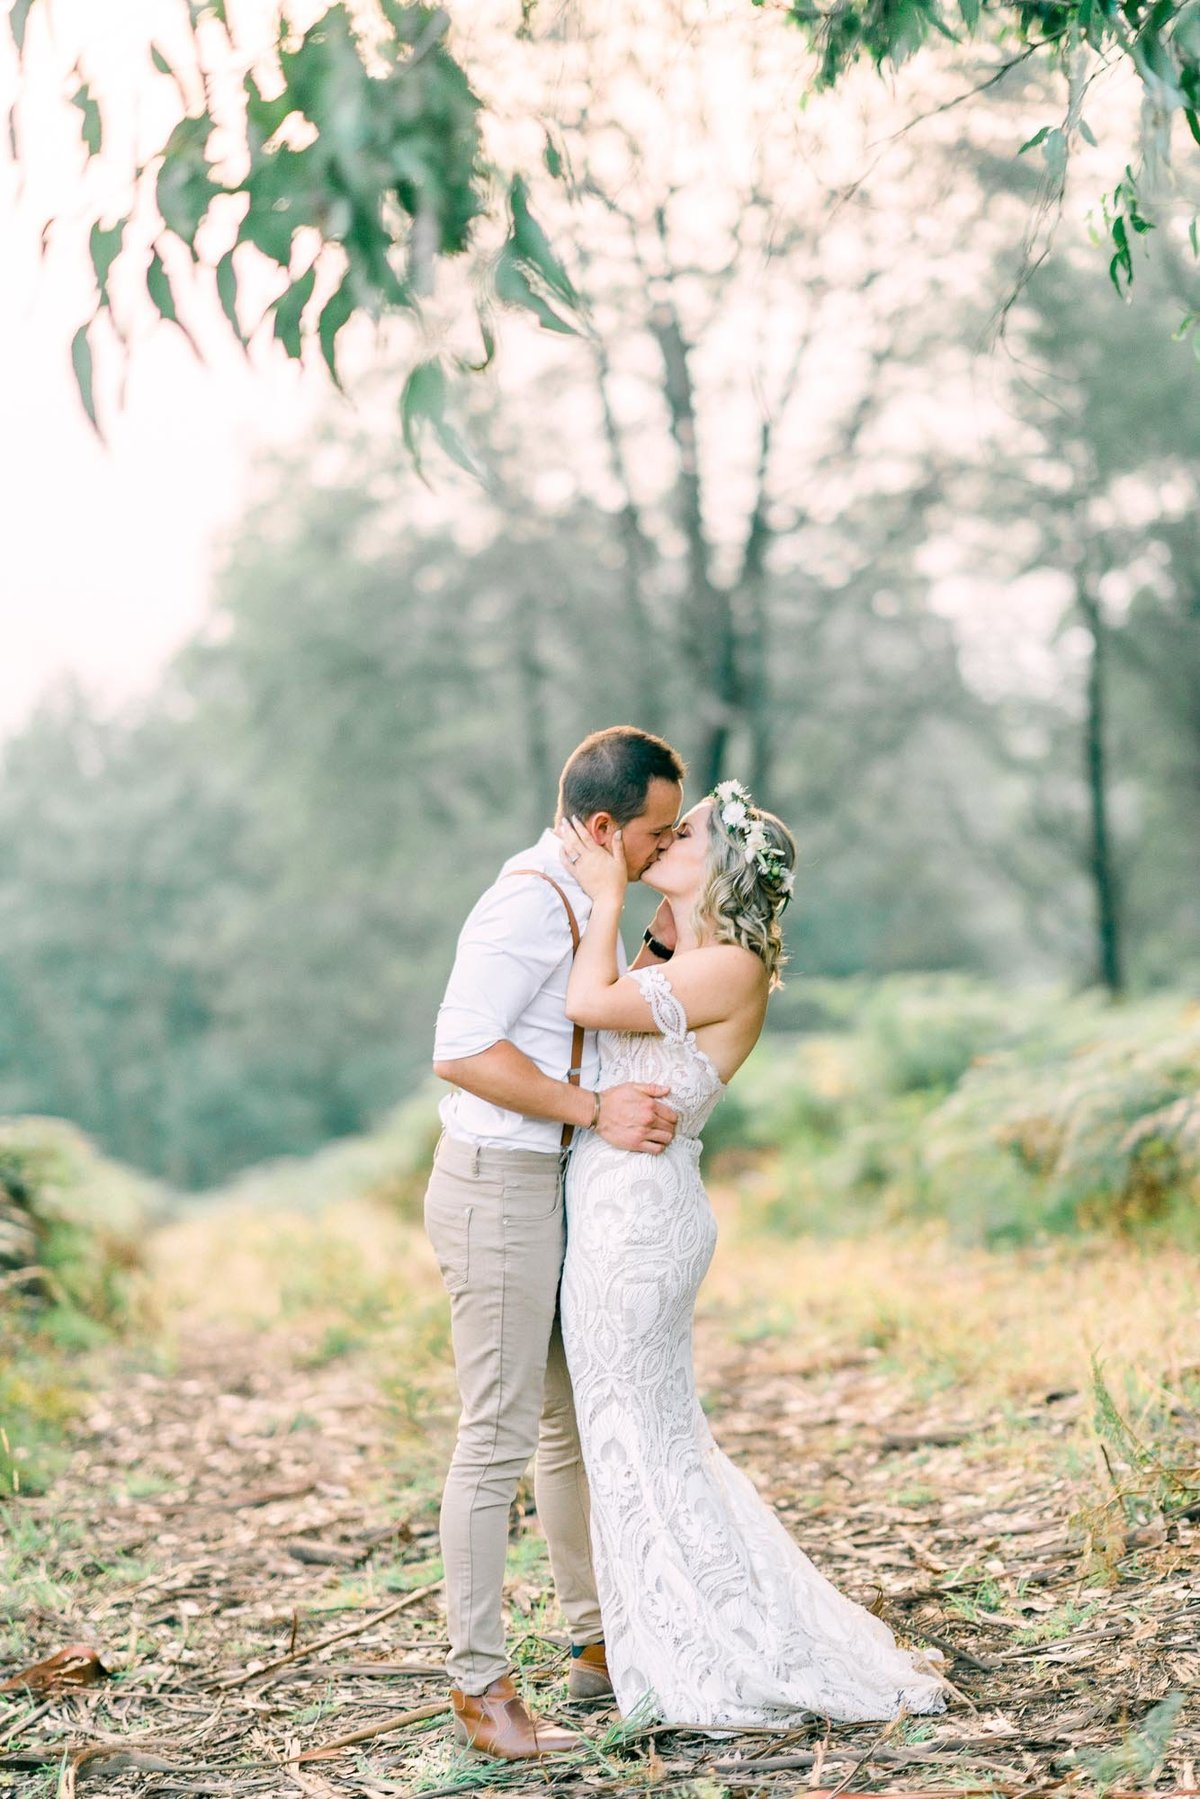 fine-art-wedding-photography-melbourne-07000